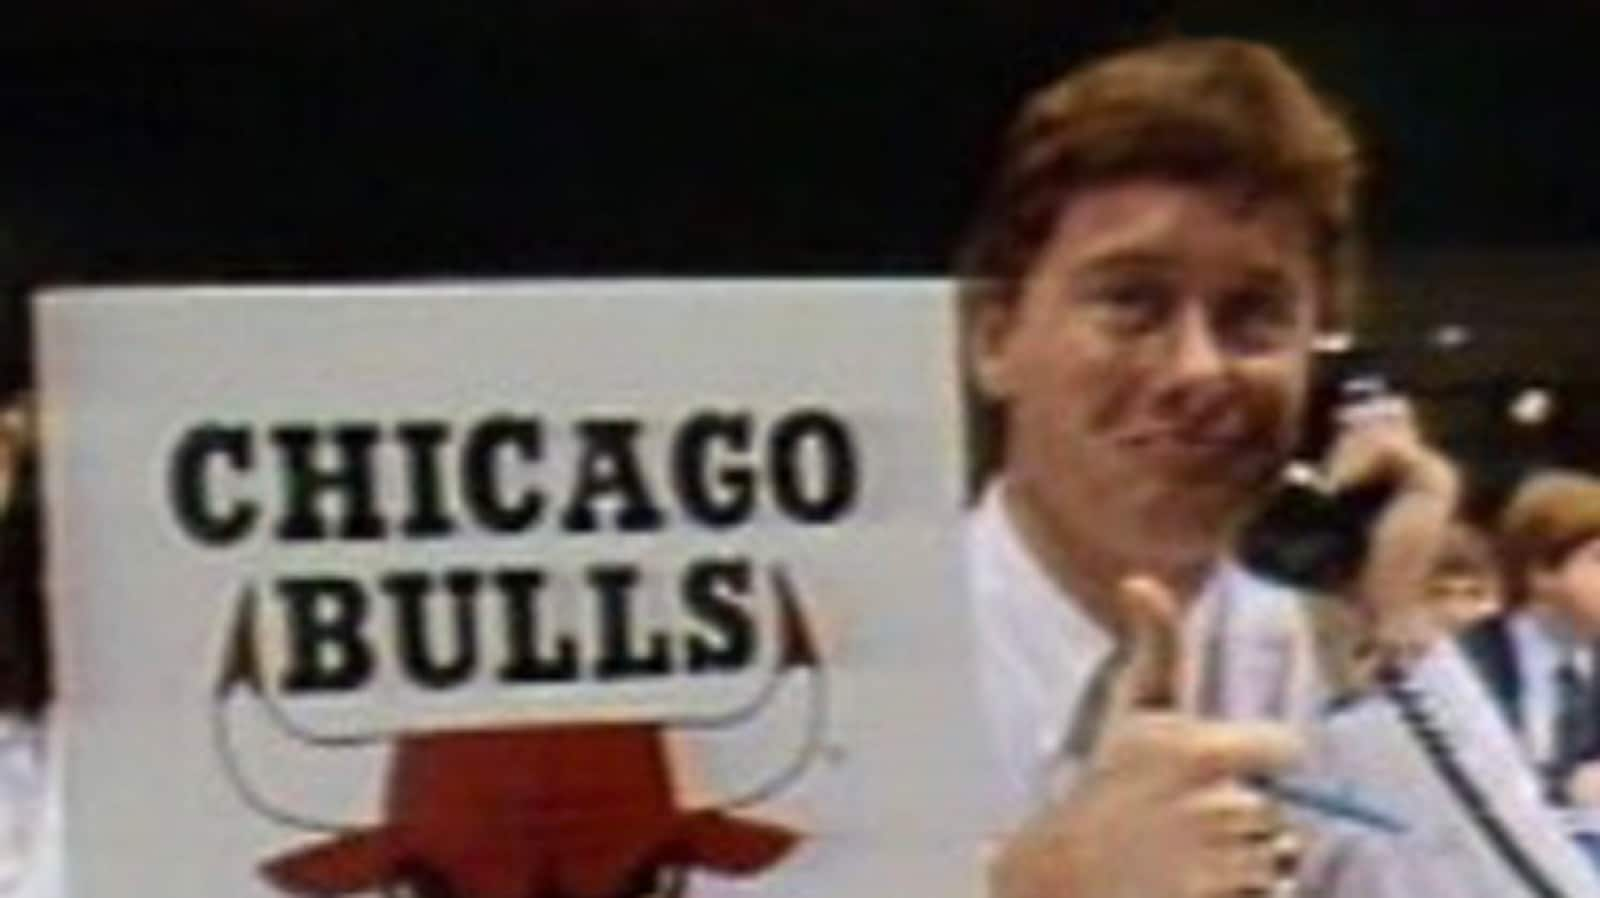 Keith Brown made a brief appearance on television as he called in the Bulls' selection of Michael Jordan.